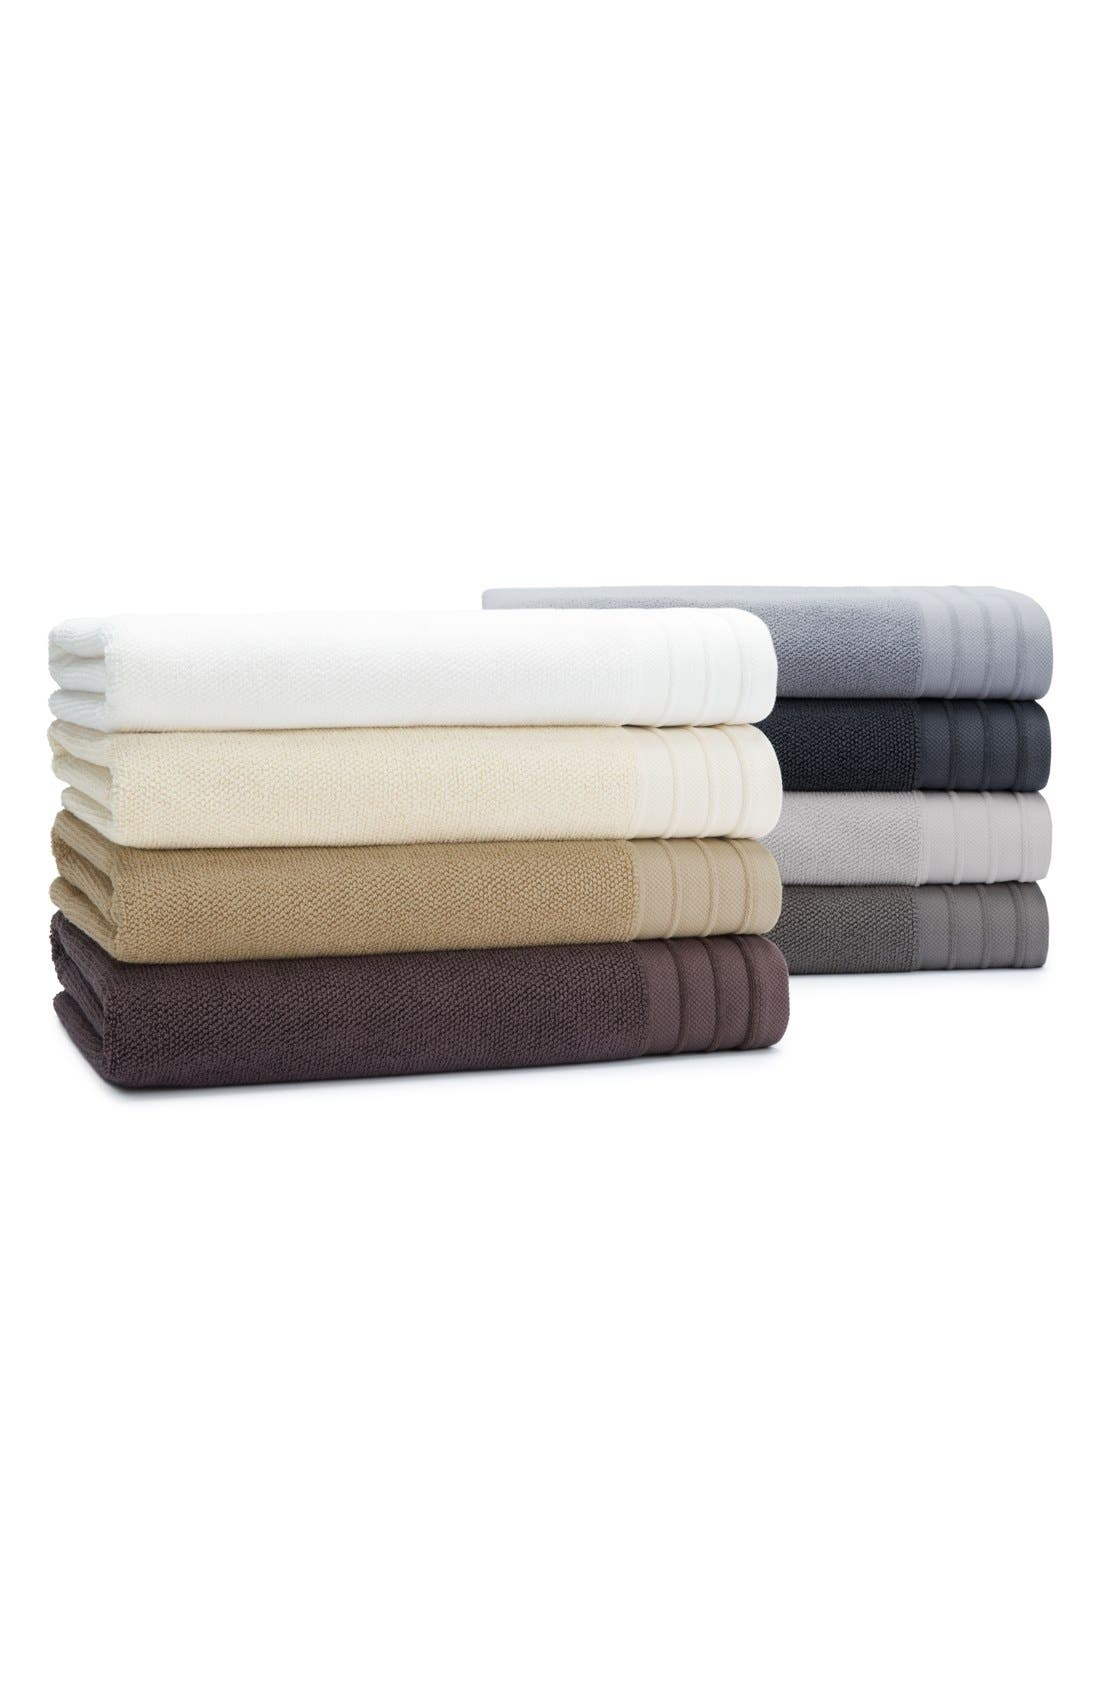 Alternate Image 3  - UGG® Classic Luxe Hand Towel